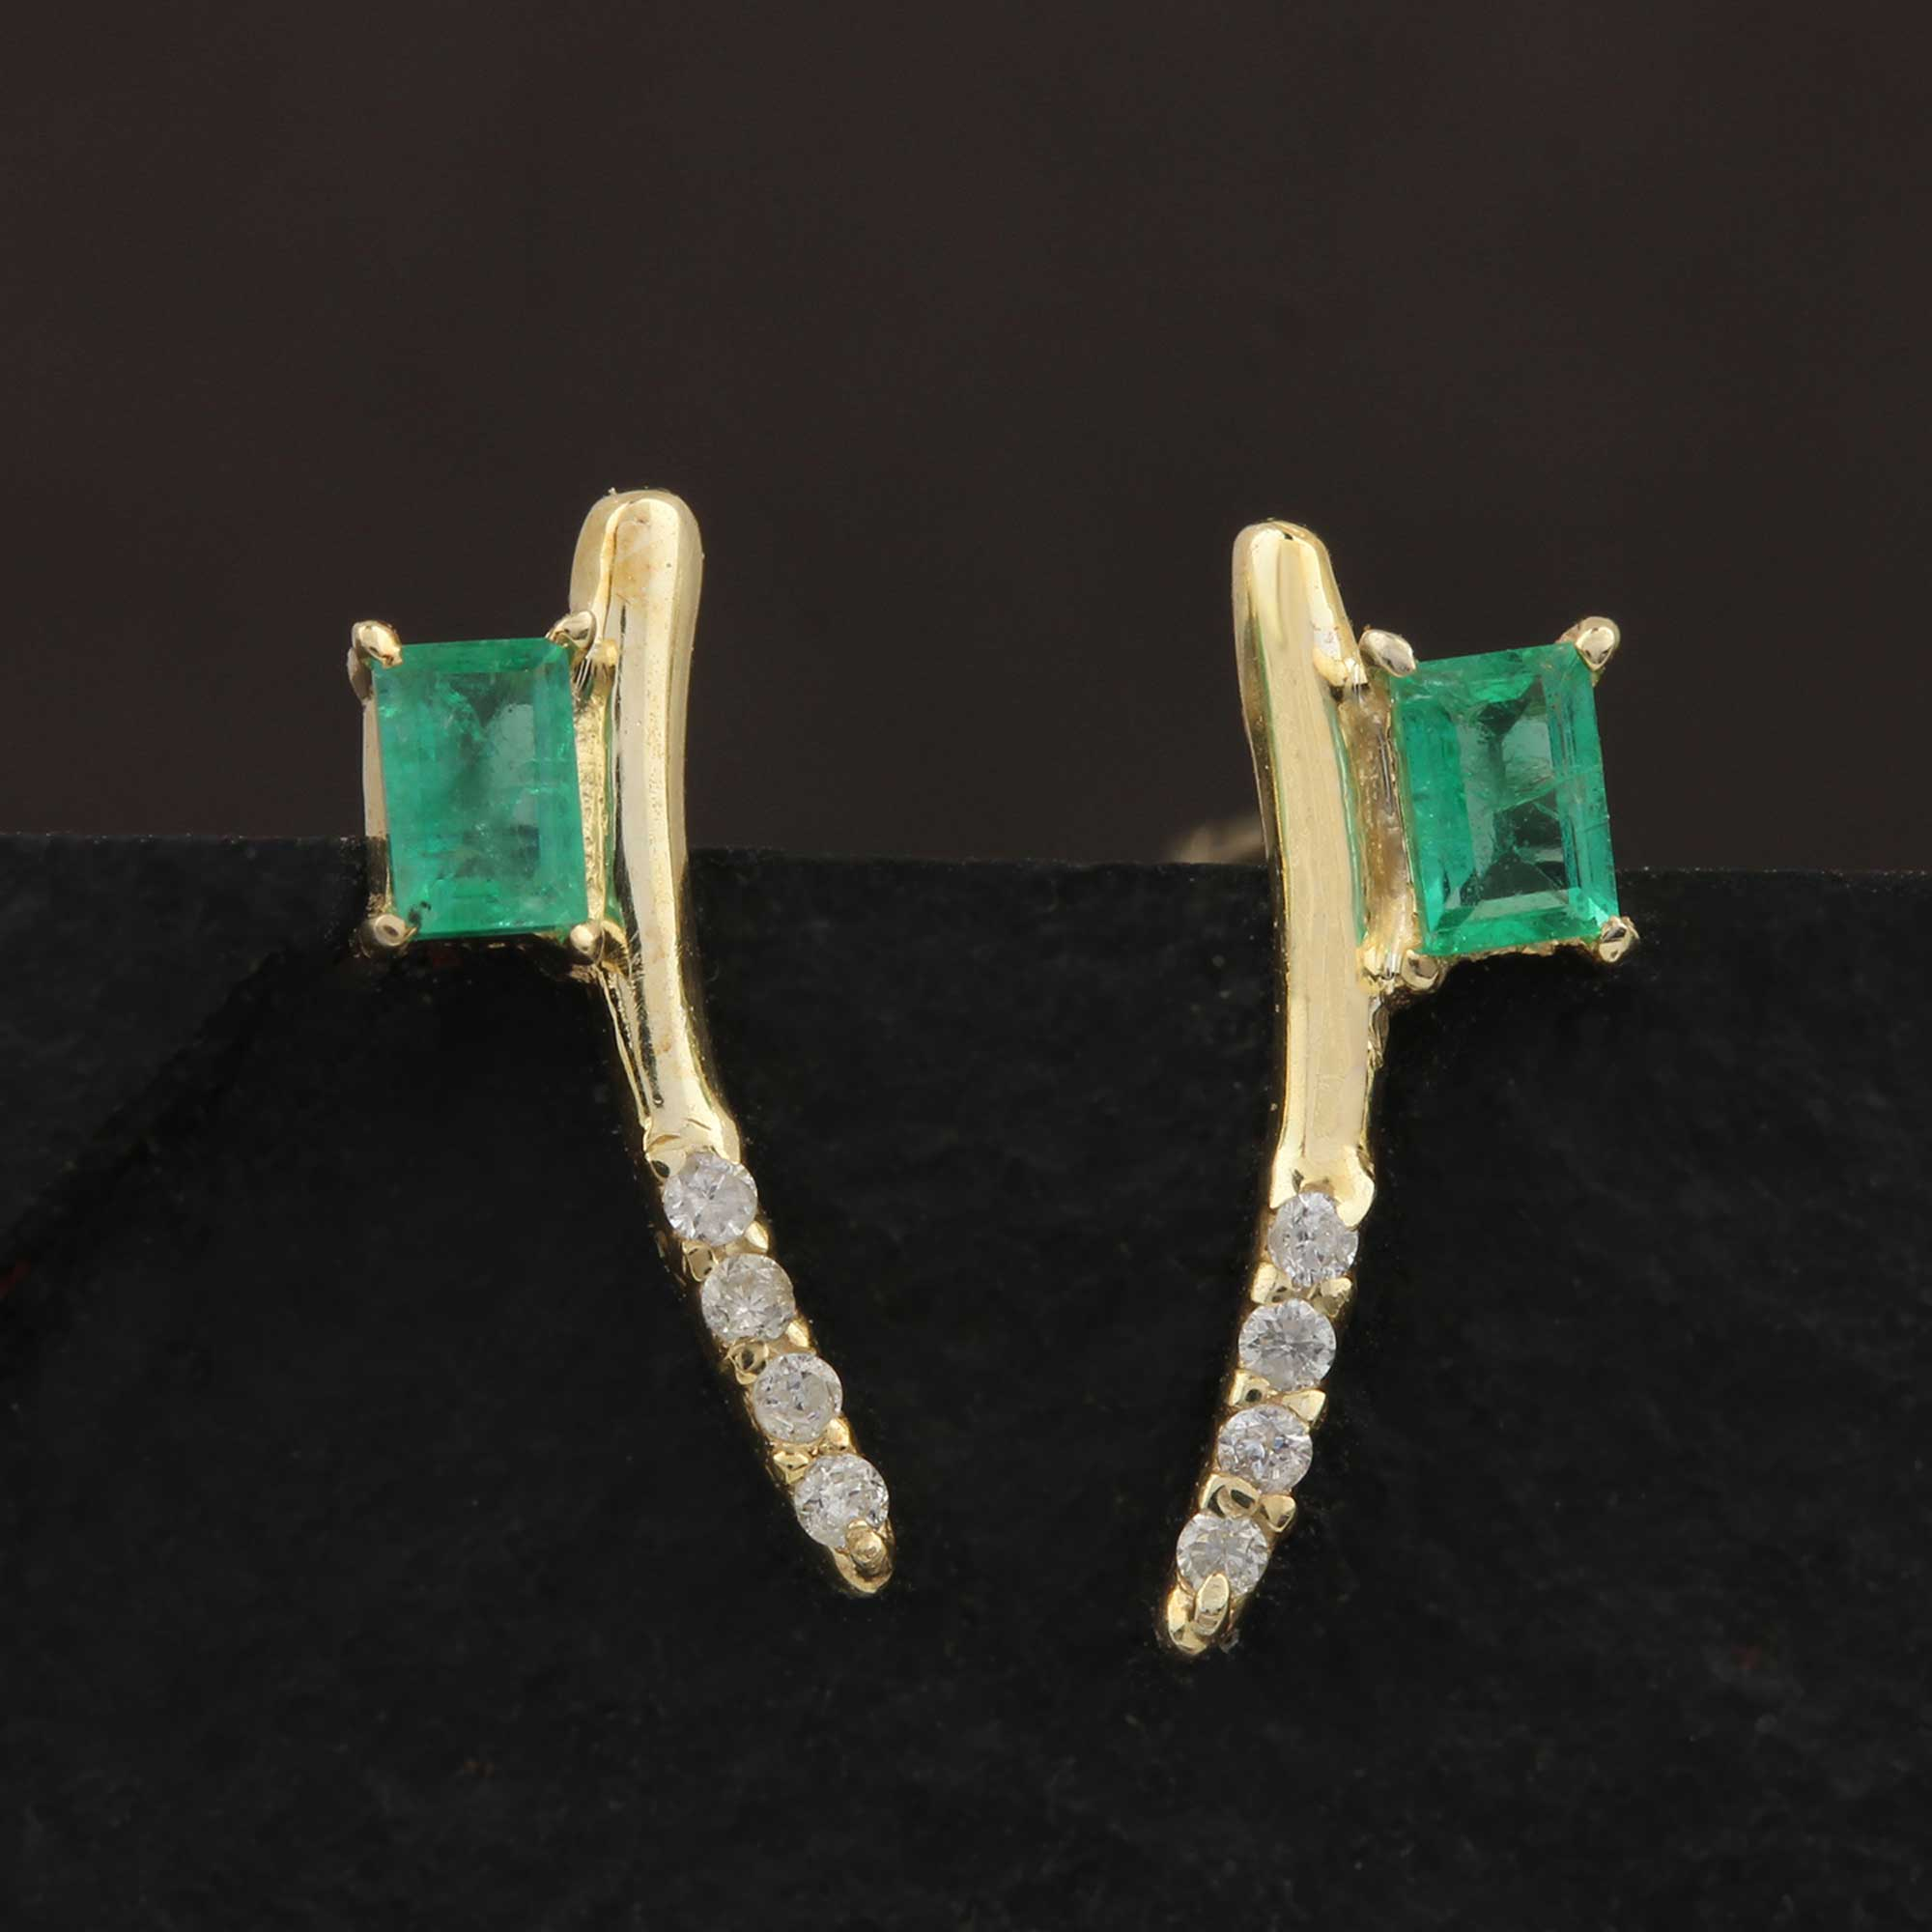 14k Solid Gold Stud Earrings Adorned With Diamond & Emerald